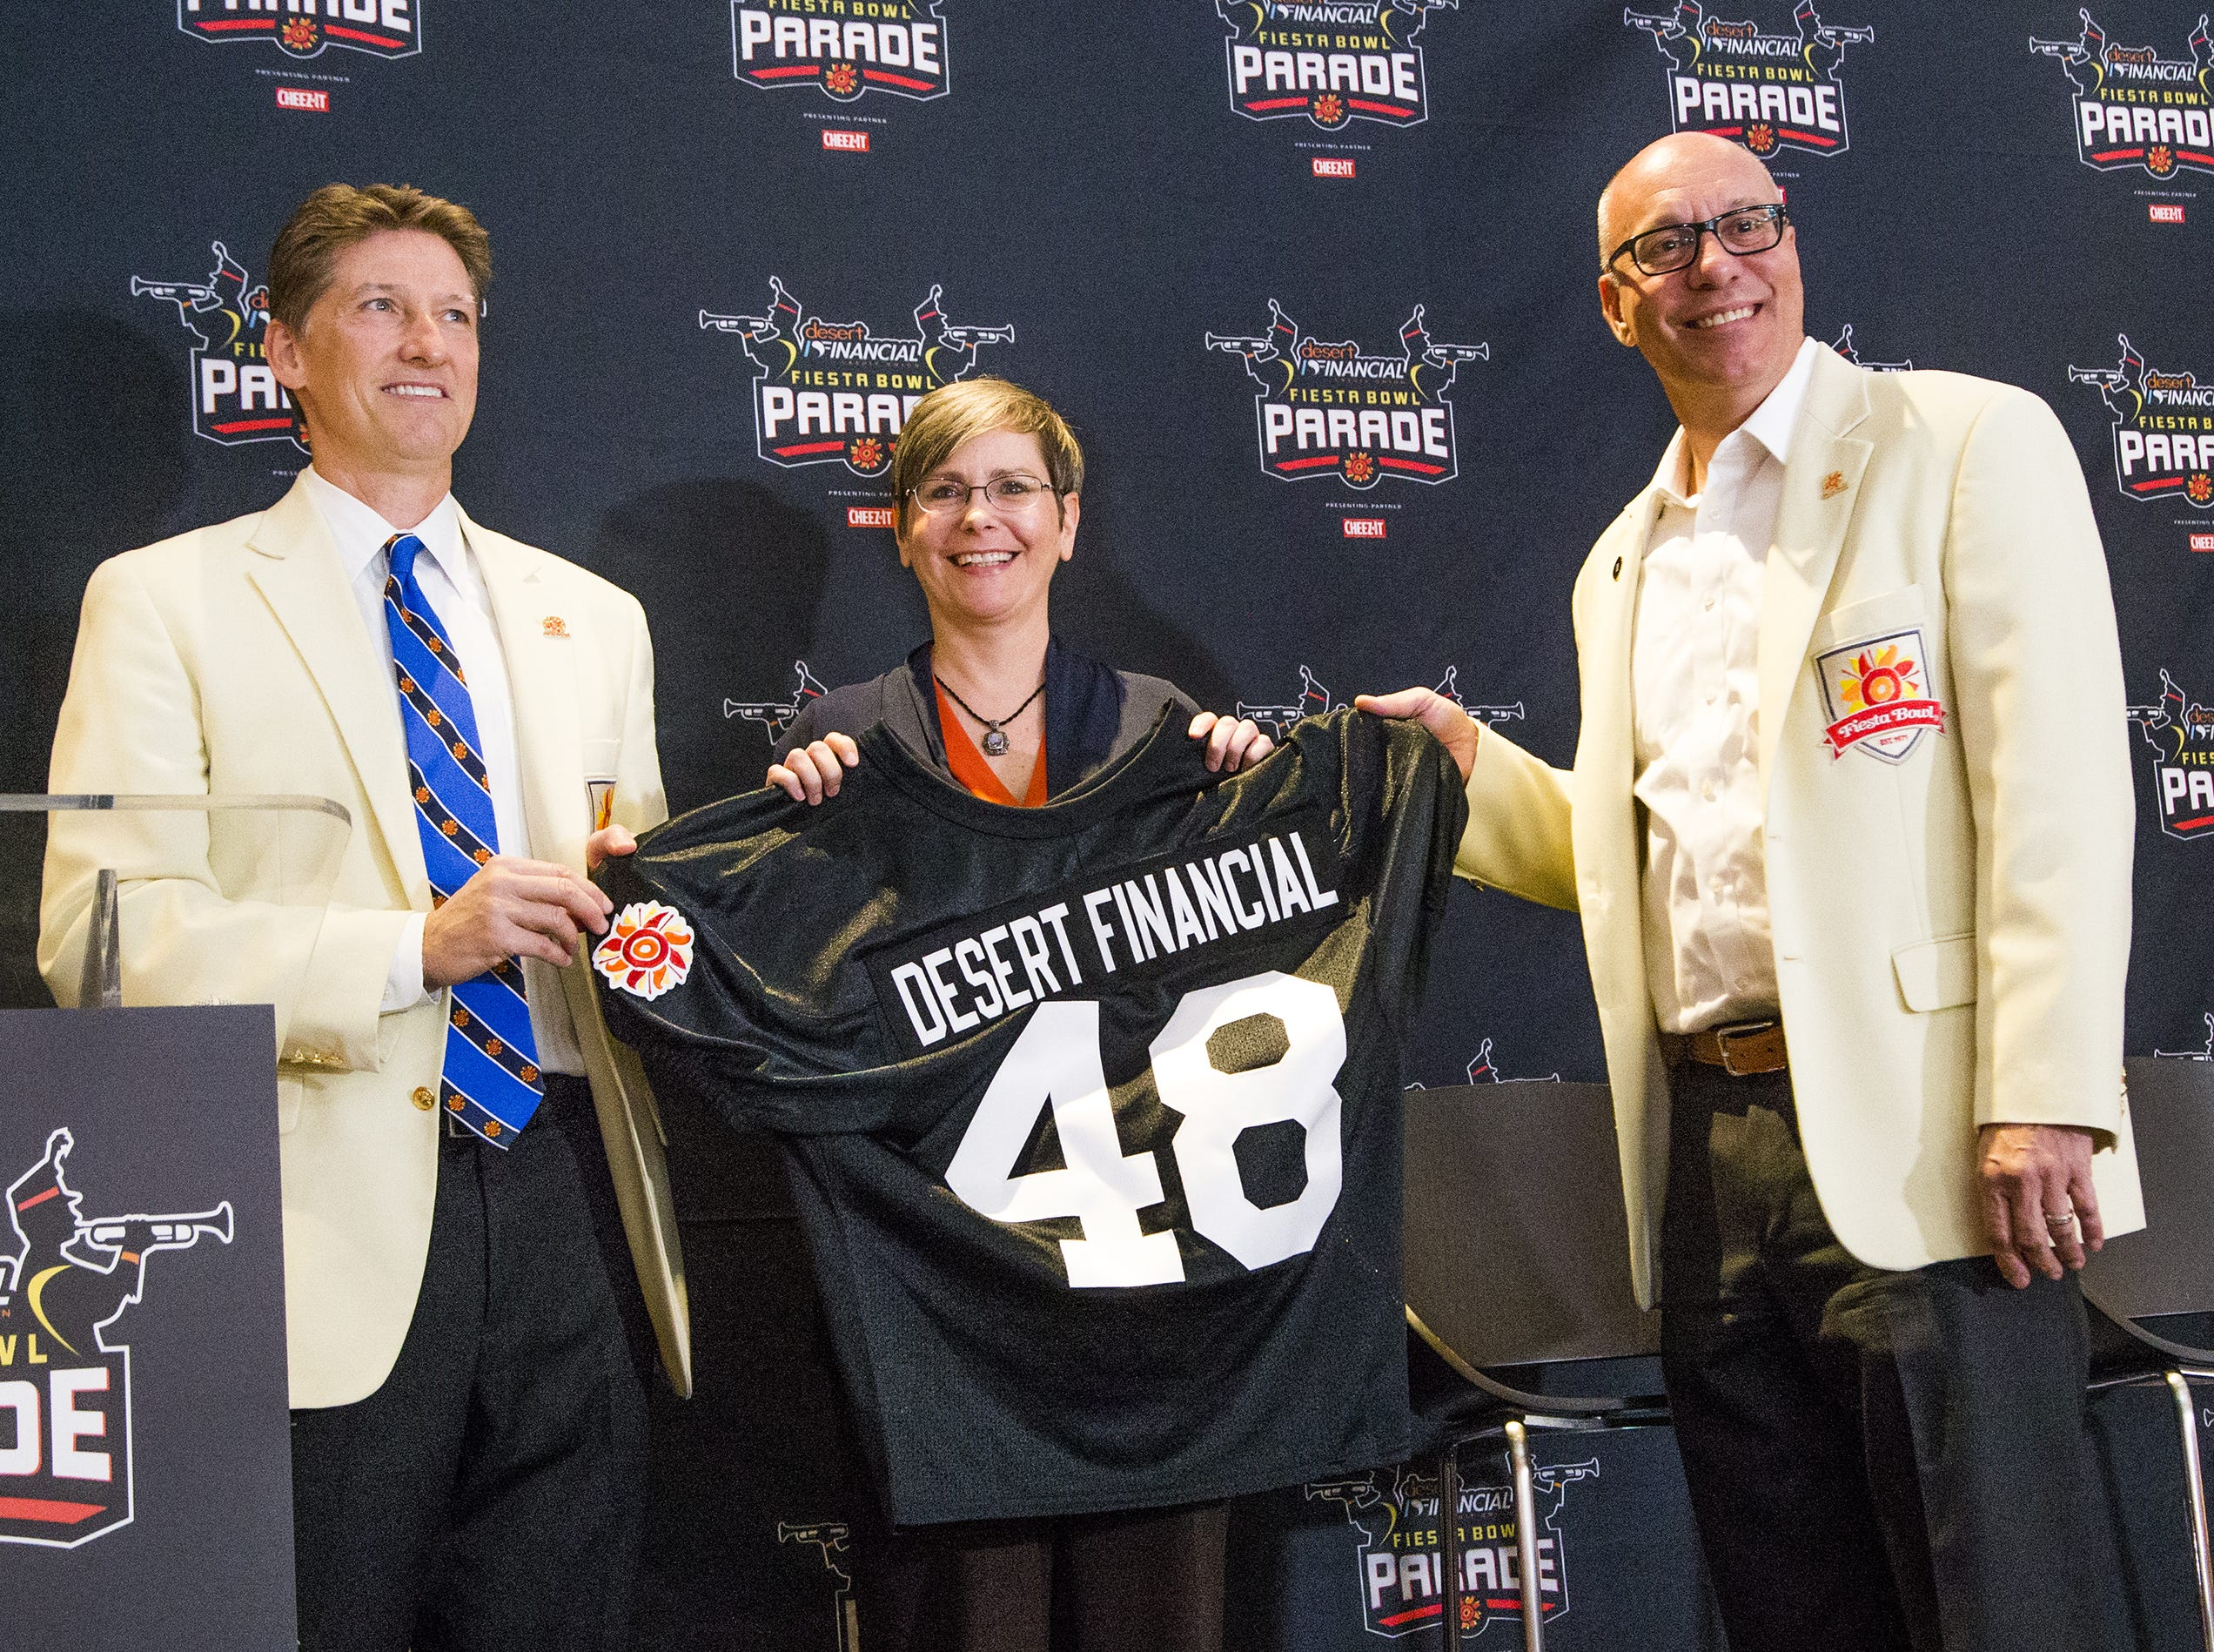 Fiesta Bowl executive director Mike Nealy, left, and chairman of the board Steve Leach, right, present Cathy Graham, senior vice president of Desert Financial Credit Union, with a jersey after it was announced that Desert Financial will be the sponsor of this year's Fiesta Bowl Parade.